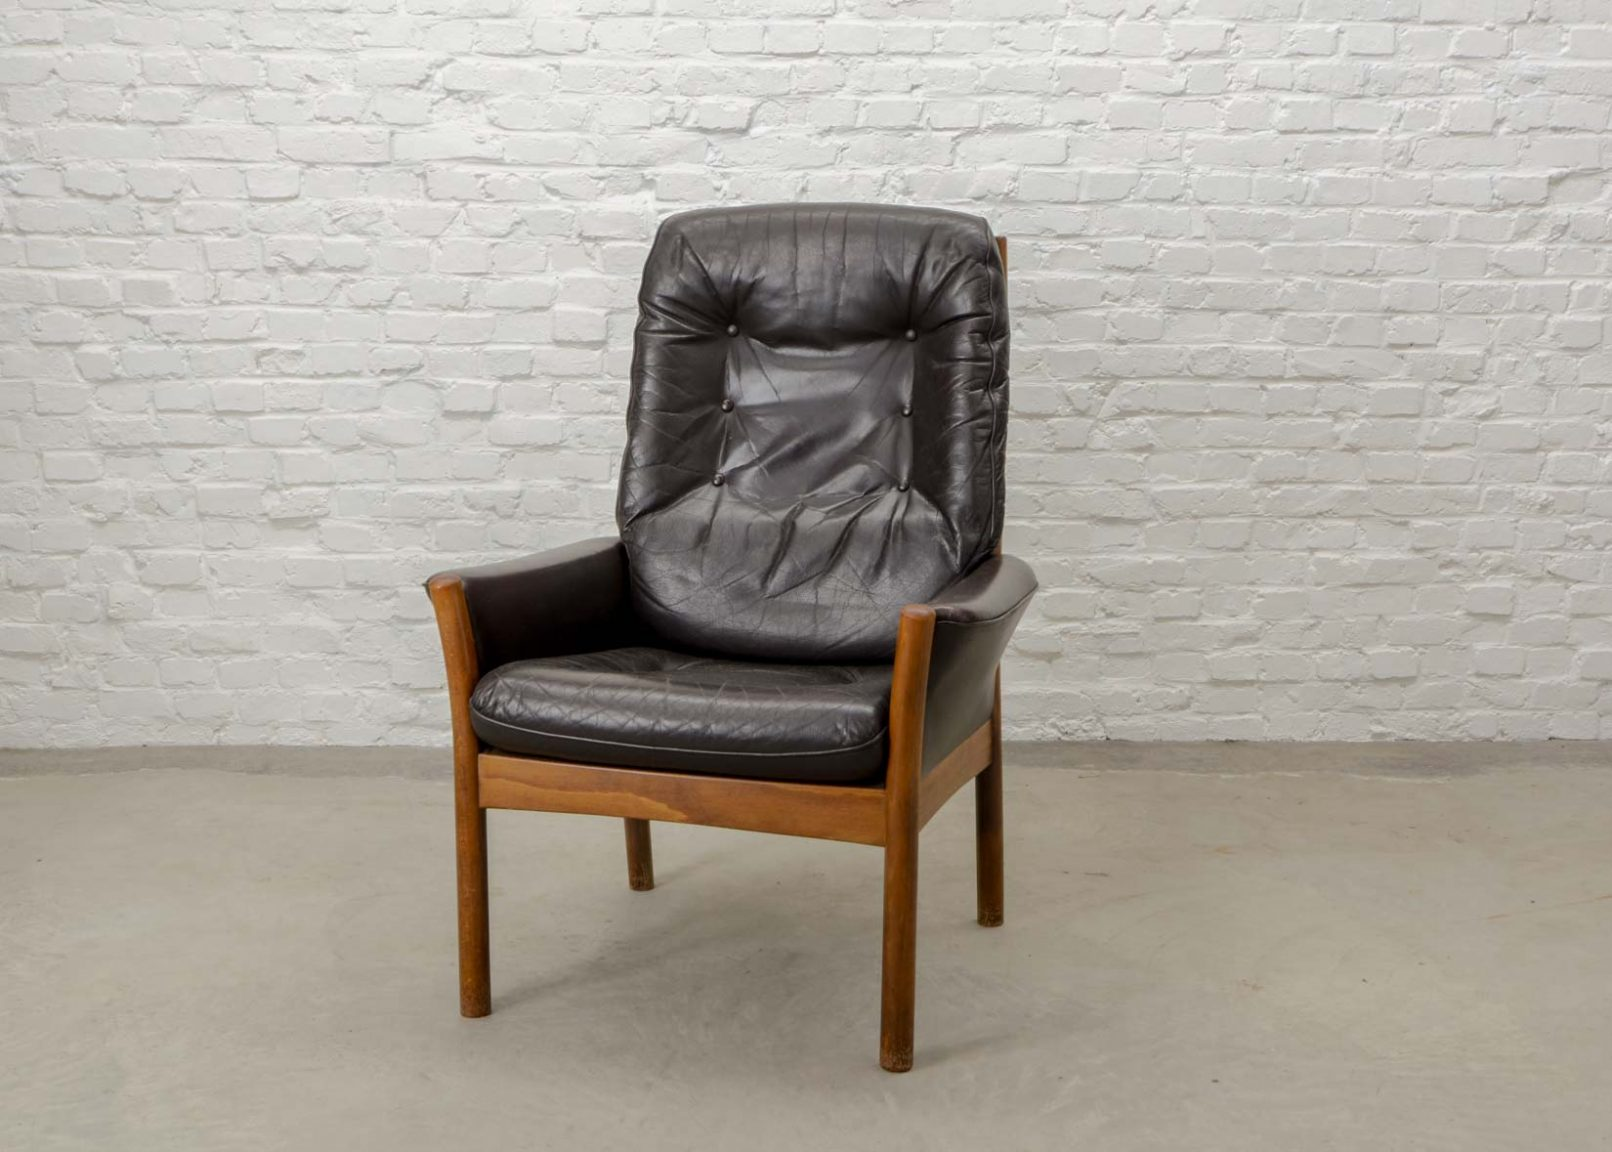 mid century scandinavian design chocolate brown leather lounge chair by g m bel sweden 1960s. Black Bedroom Furniture Sets. Home Design Ideas